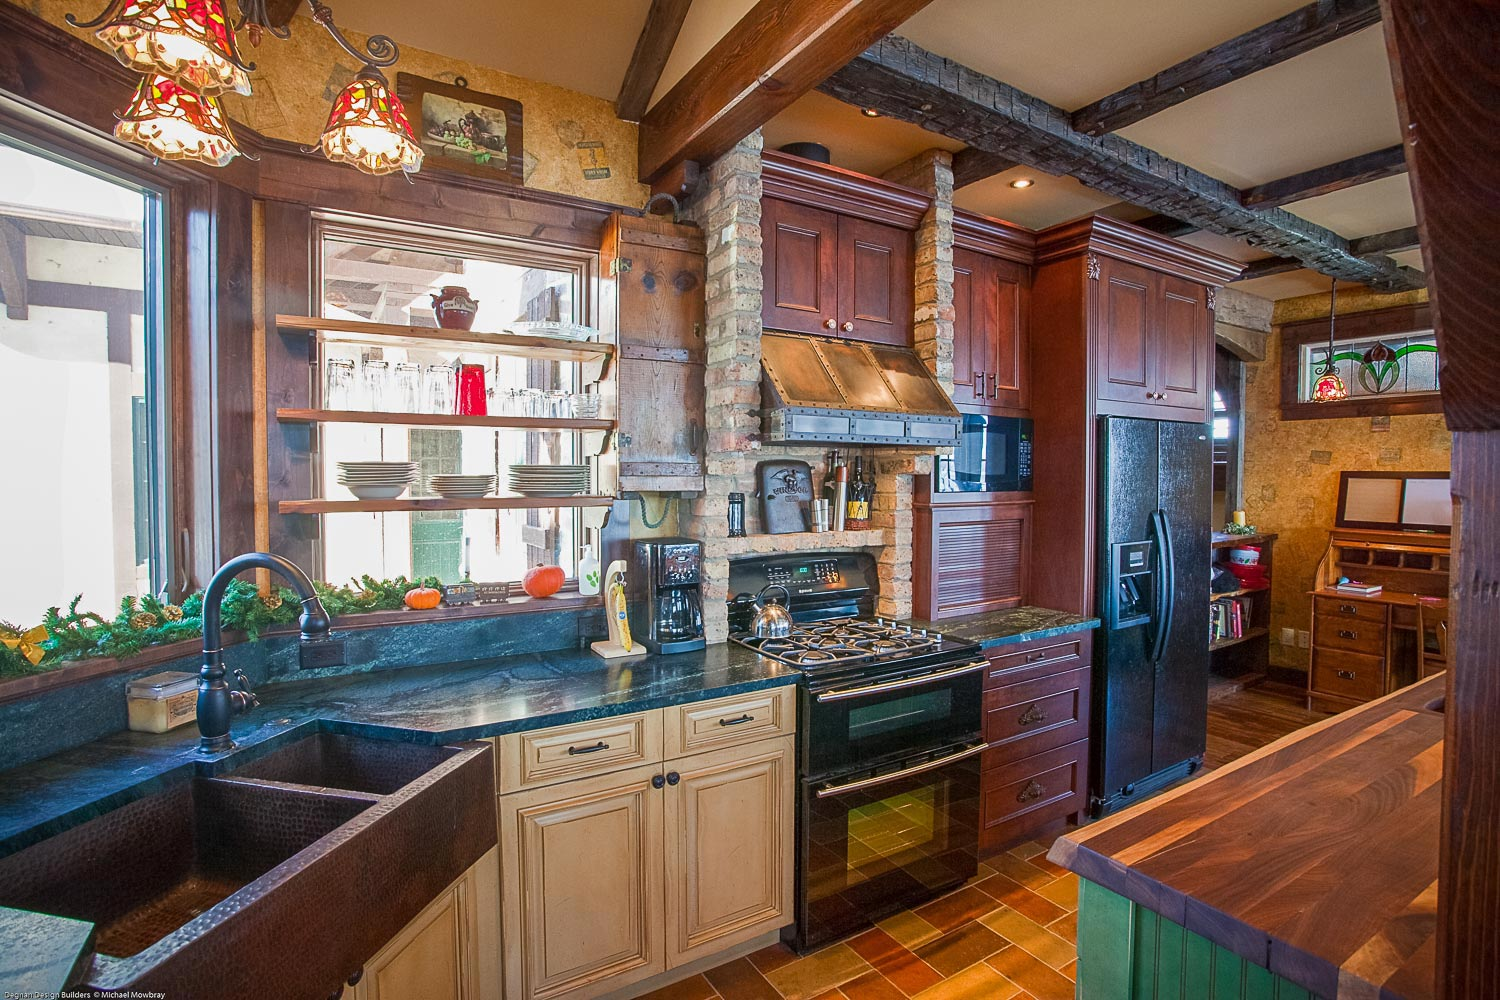 Home Remodeling And Cabinetry Ideas For Semi Open Floor Plans Degnan Design Build Remodel